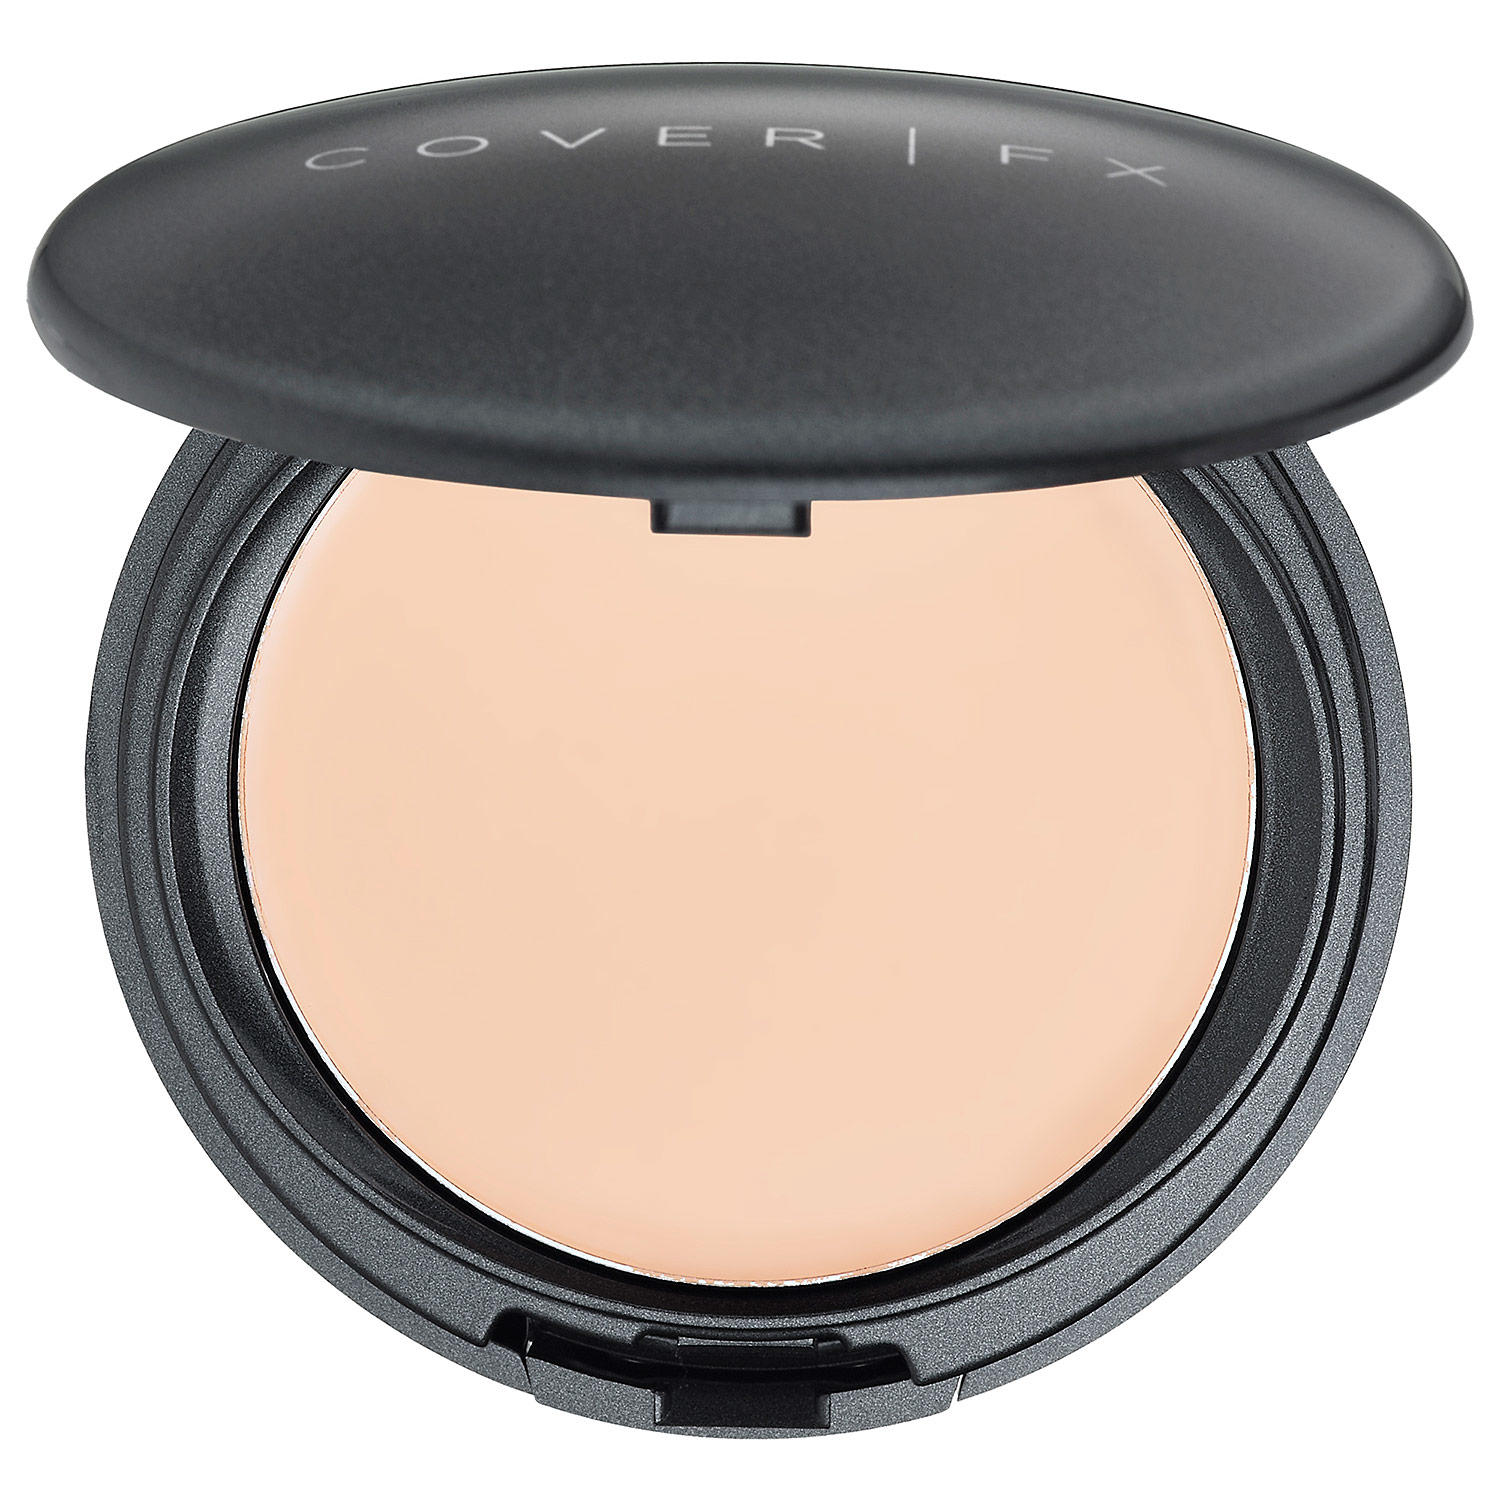 Cover FX Mineral Compact Foundation N10